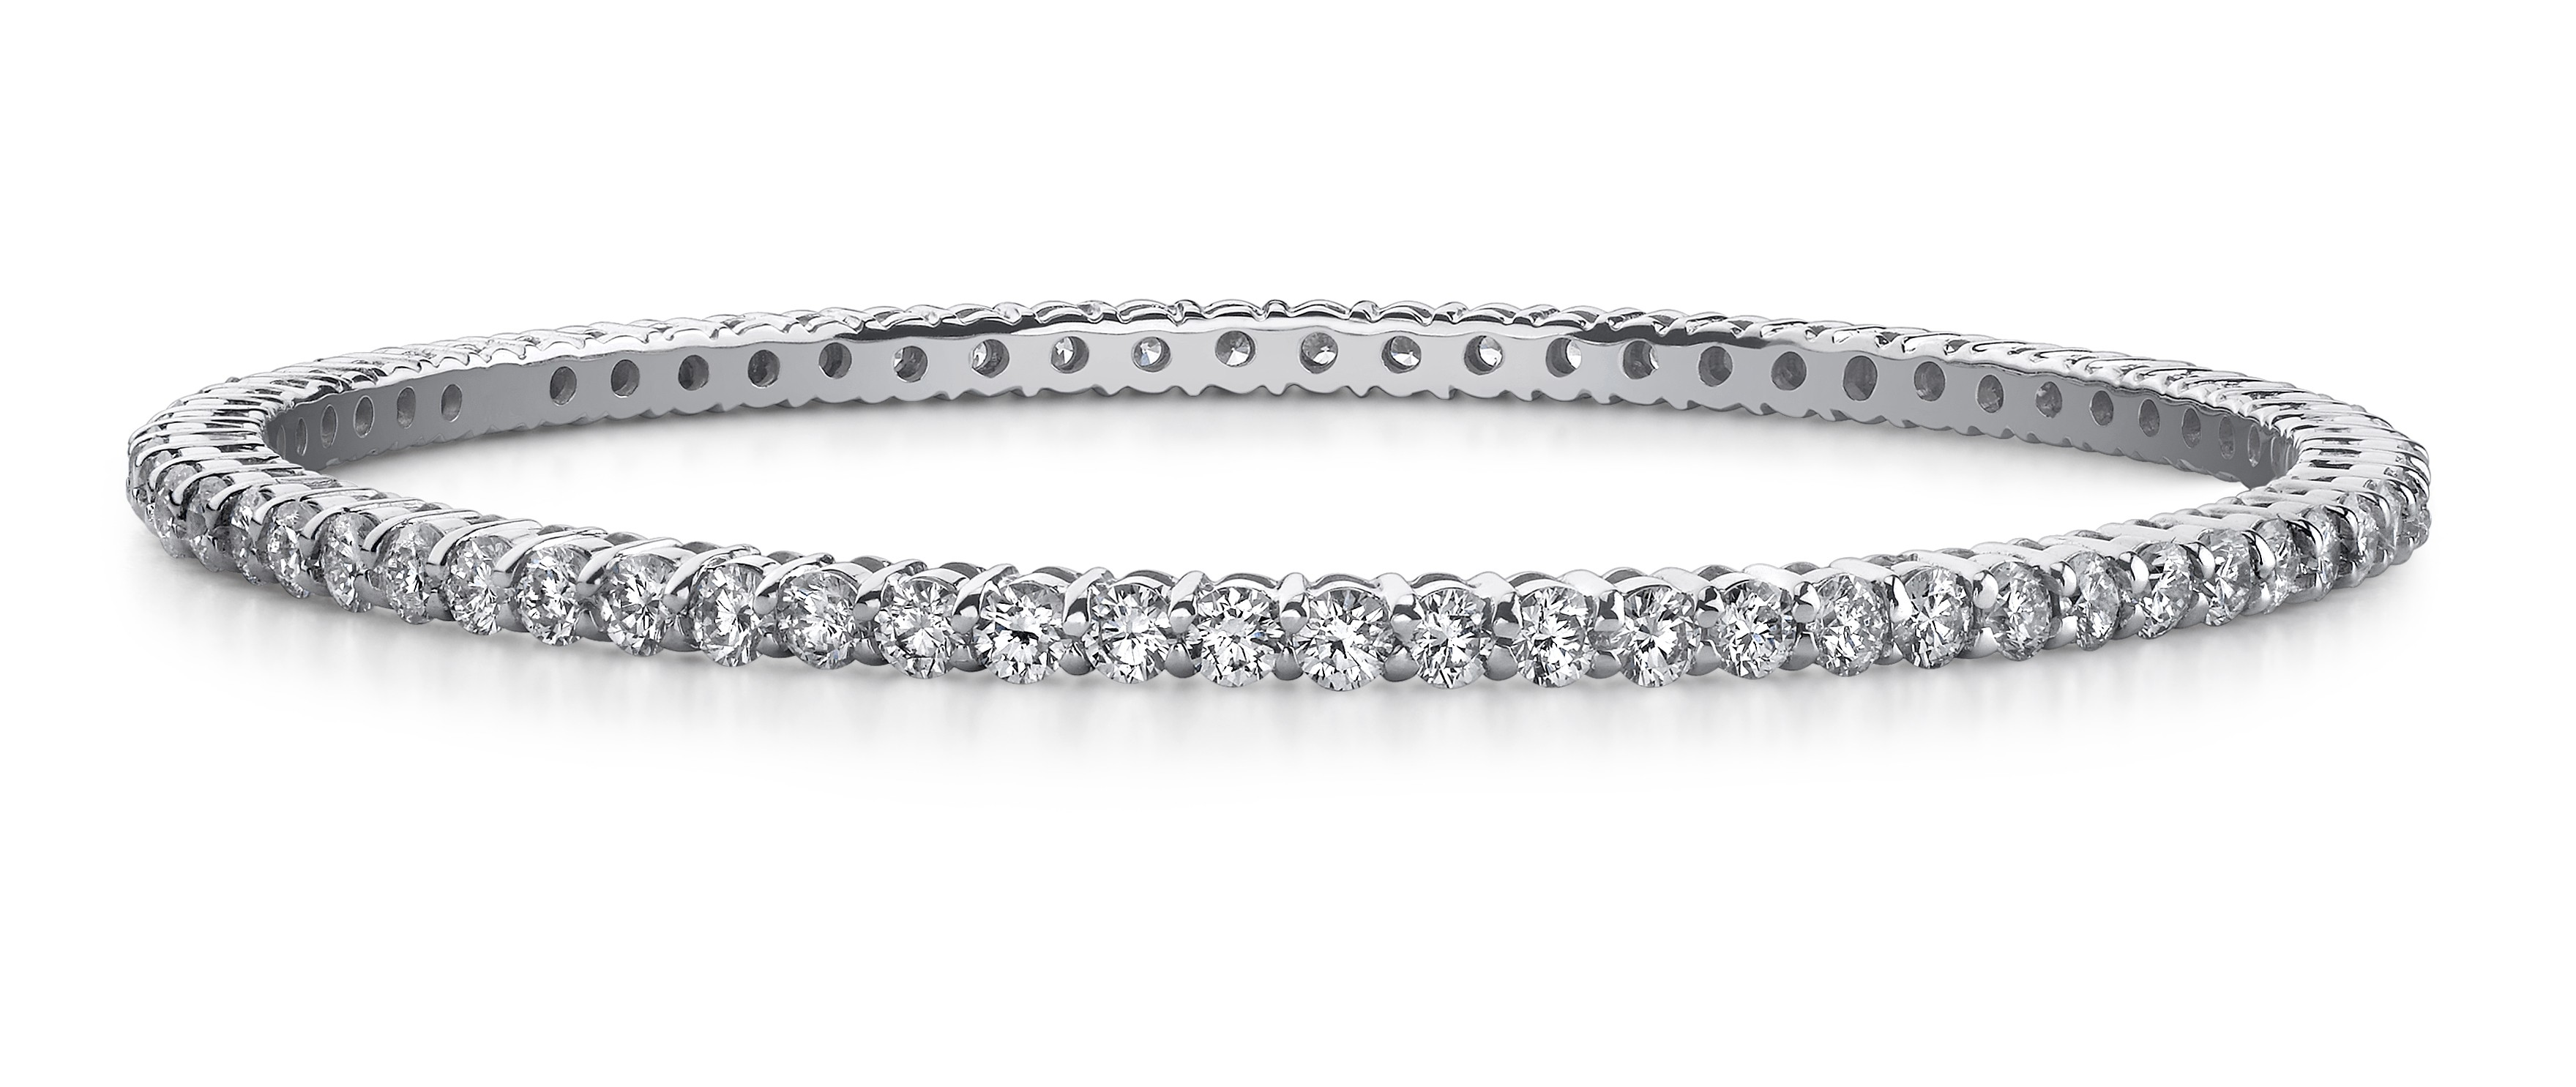 bangle product of diamonds bangles gold carat diamond made bracelet italian